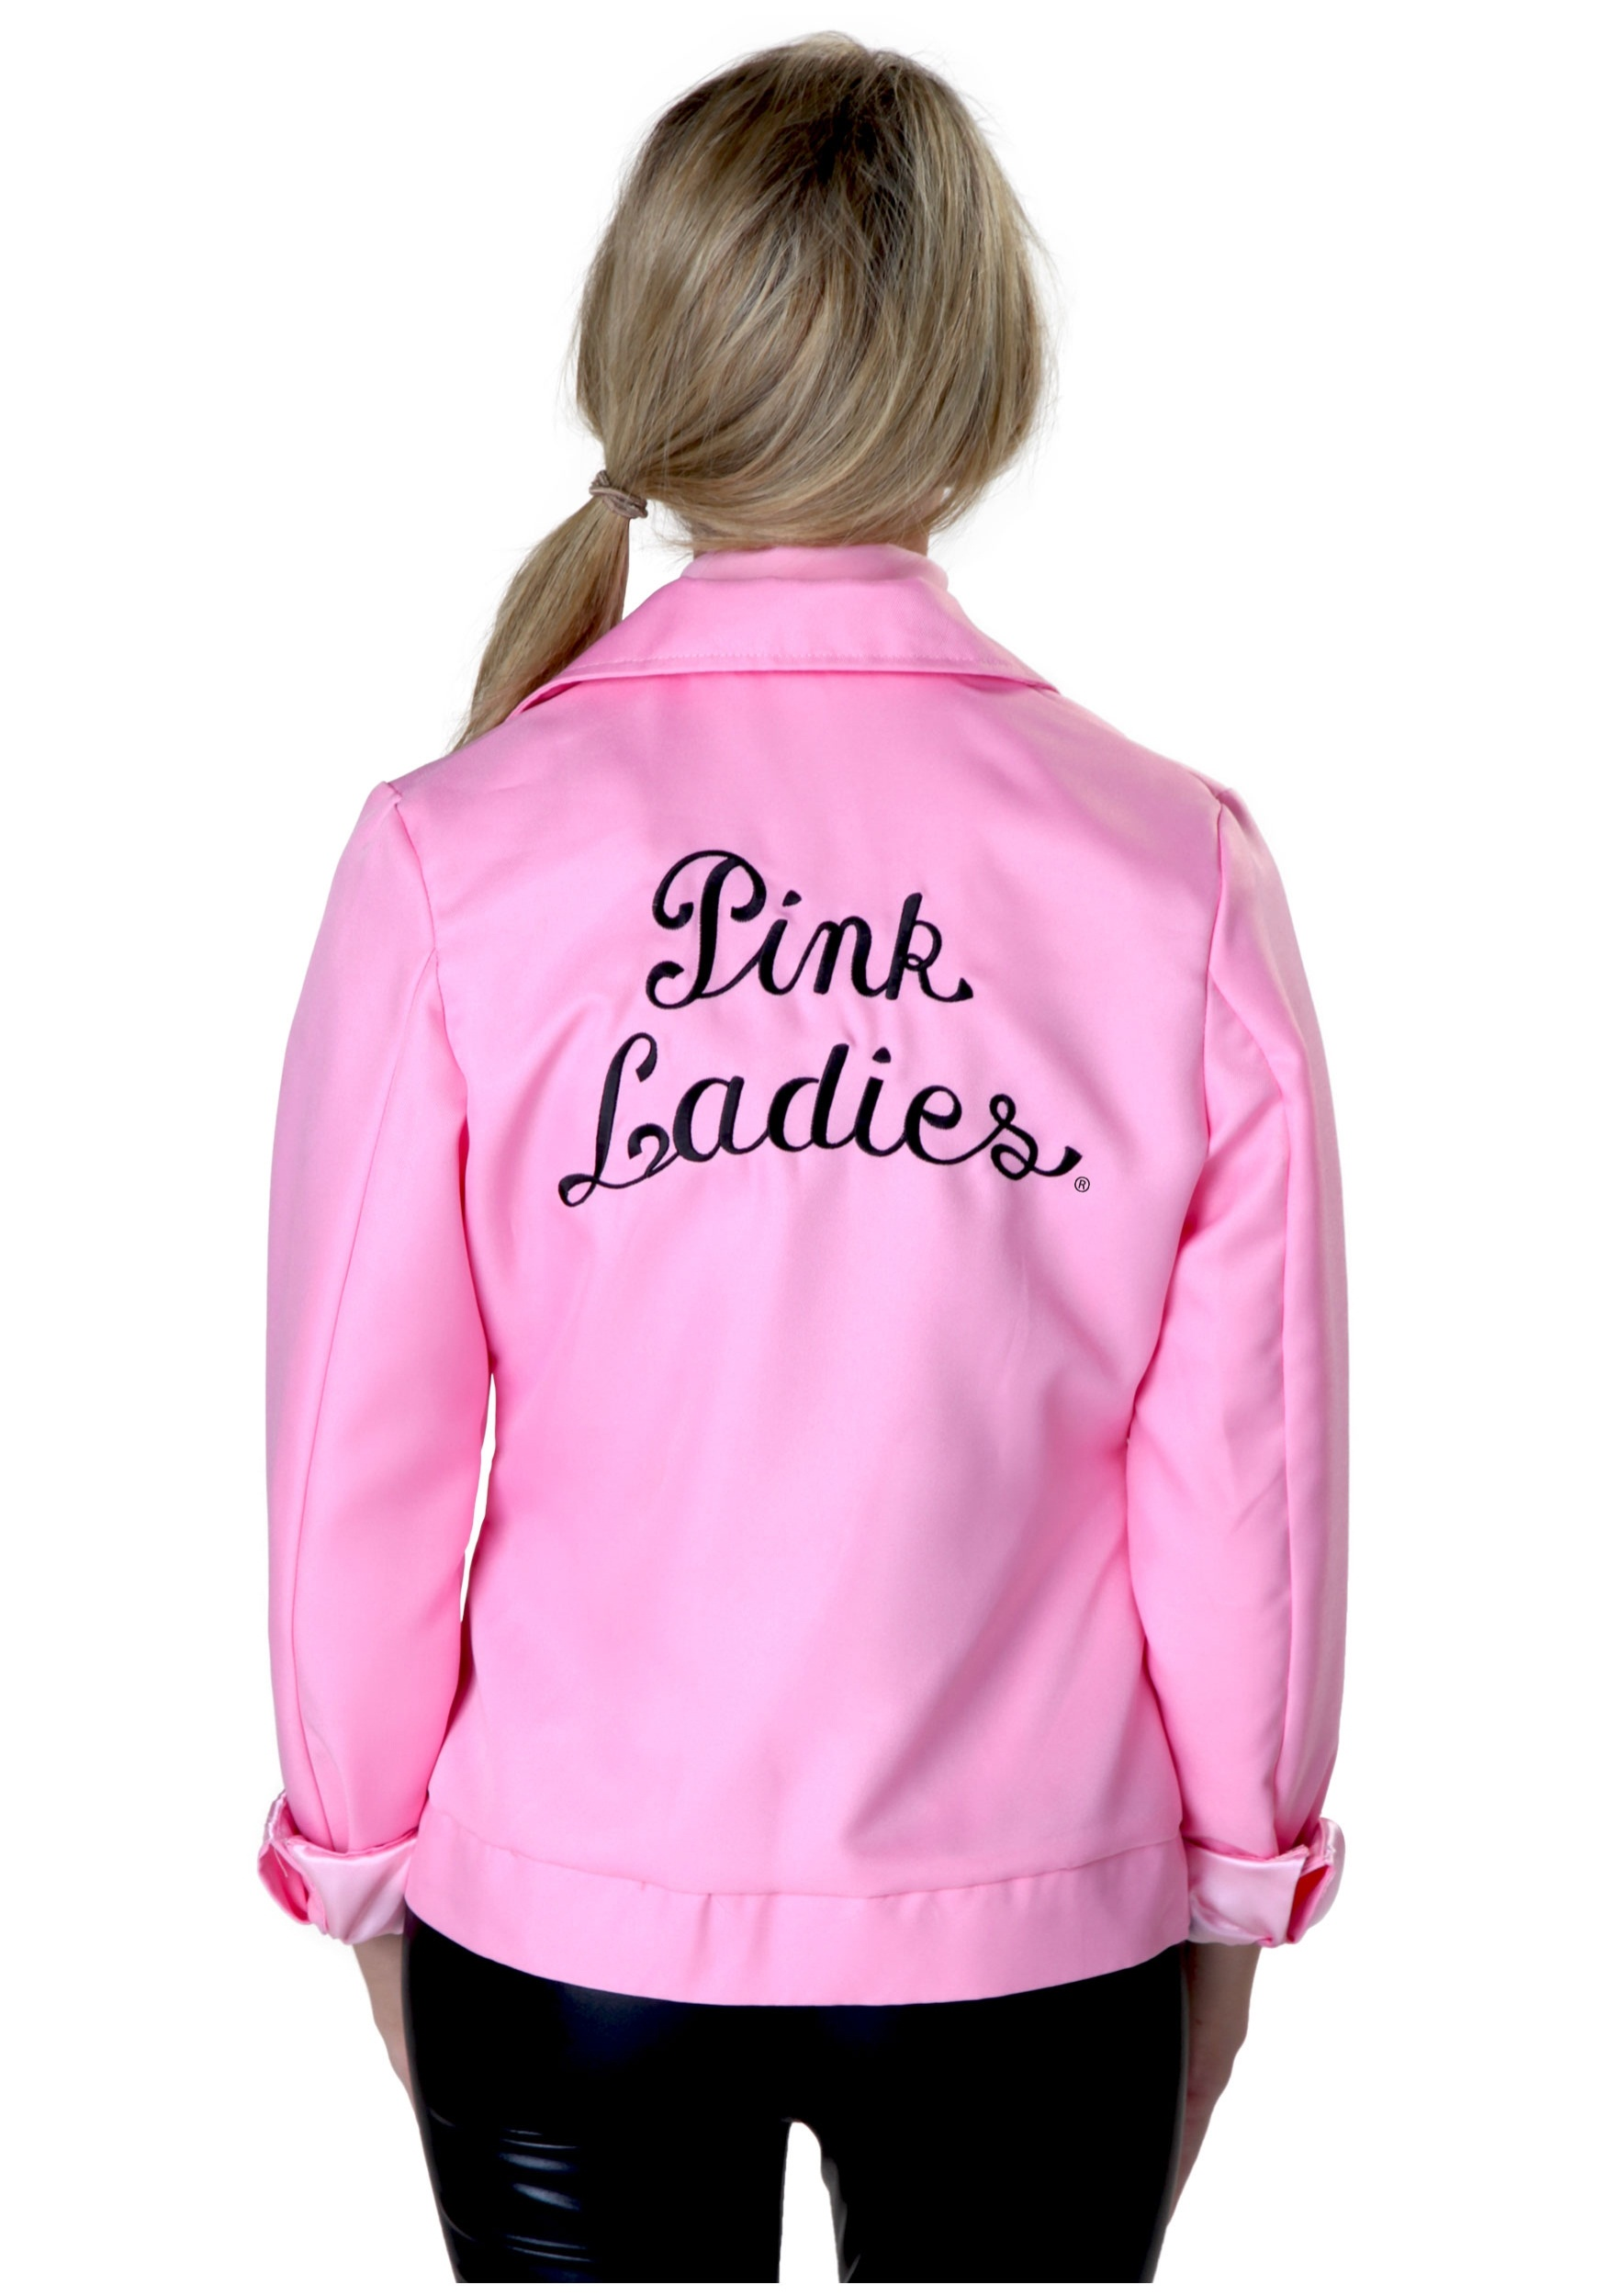 Pink Faux Fur Hoodie Bomber Jacket $ 30% OFF w/ CODE 30FORYOU. With a variety of striking winter colors and styles, including black, brown, blue and white, our selection of plus size women's winter jackets are as warm as they are trendy. Try out a cute bomber jacket with a faux fur hood or enjoy the comfort and perfect fit of a warm.